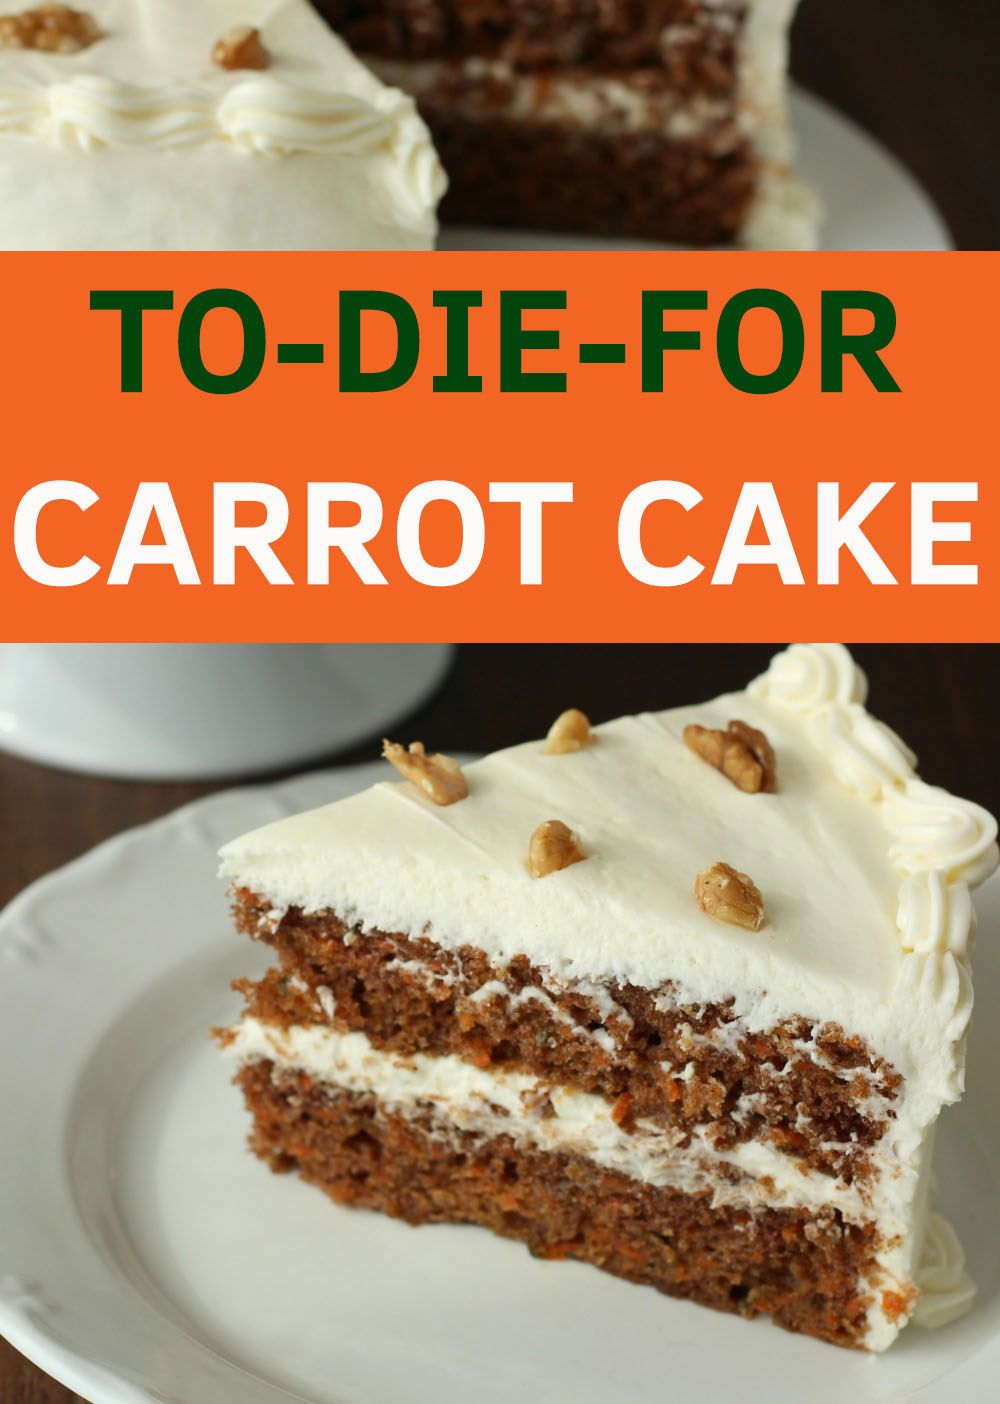 Moist Carrot Cake And Whipped Cream Cheese Frosting Mirlandra S Kitchen Recipe Cake Recipes Desserts Carrot Cake